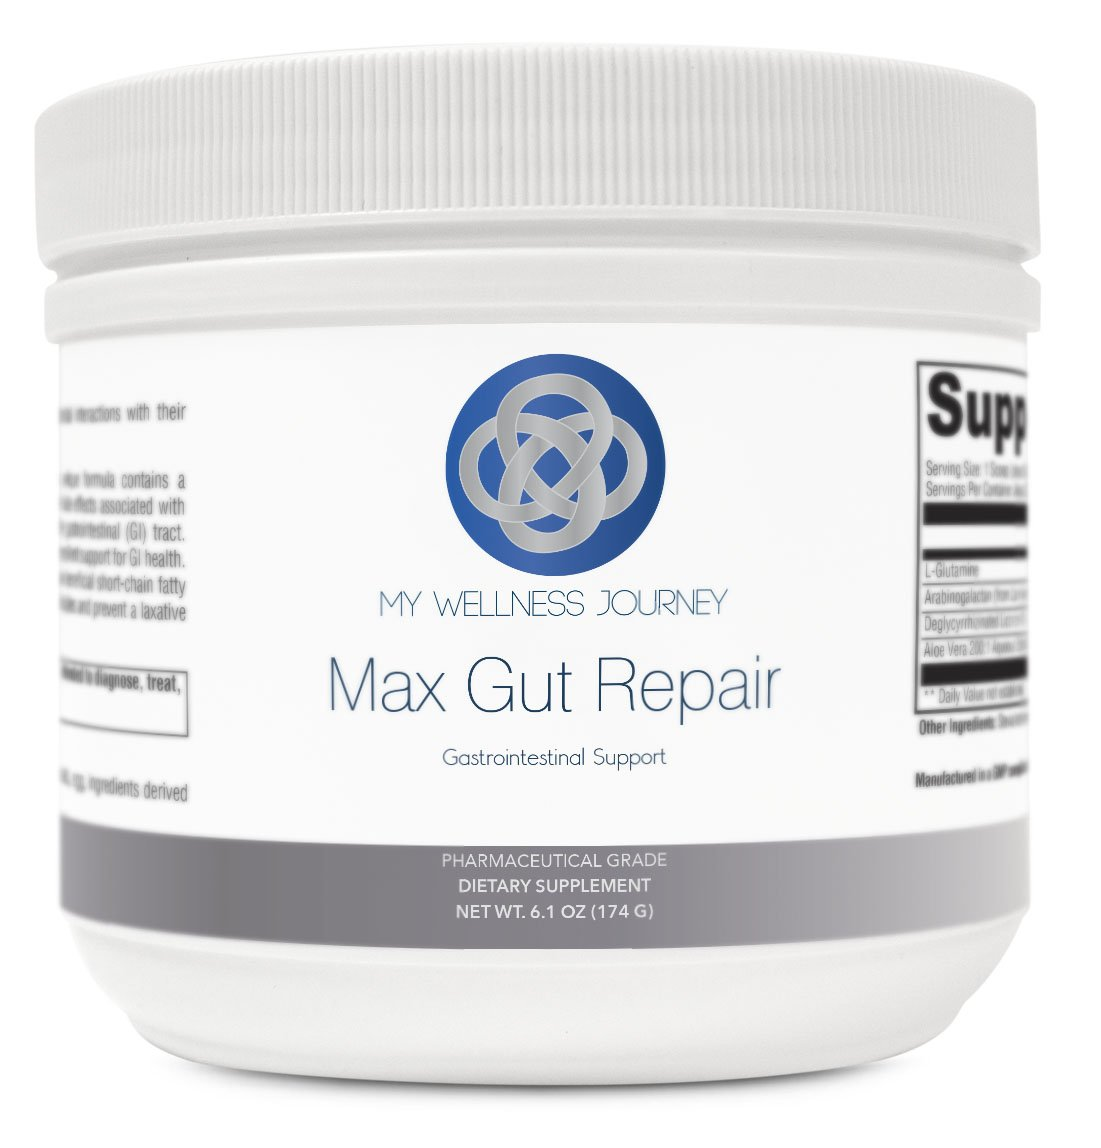 L-Glutamine with Aloe- Max Gut Repair- Support for Mucosal Lining, Leaky Gut and GI Health- Promotes Healthy Gut Microflora- Pharmaceutical Grade- 30 servings 6.1 oz (174 g) by My Wellness Journey LLC